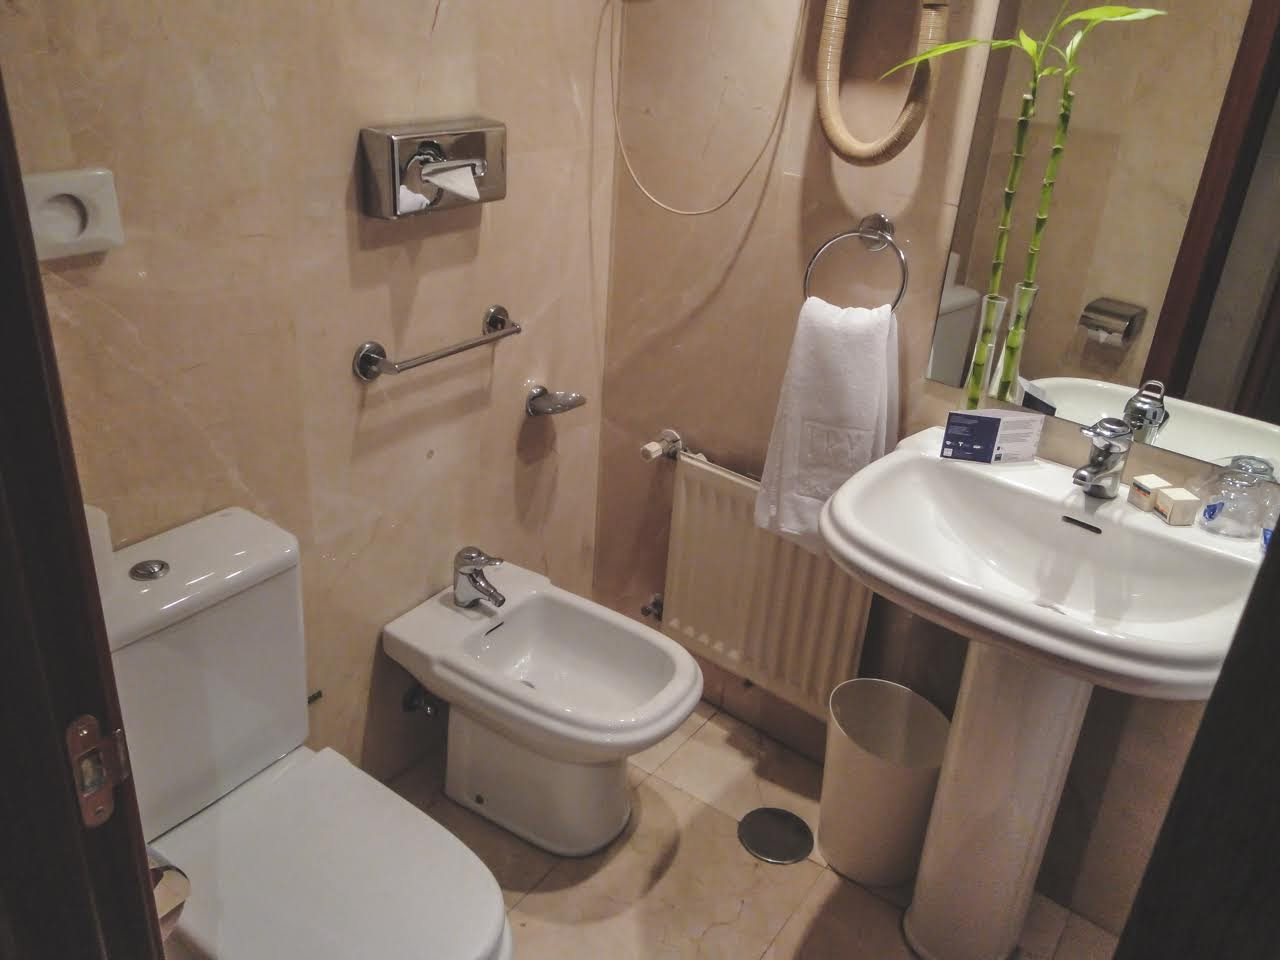 the bathroom in our hotel had everything, even a bidet